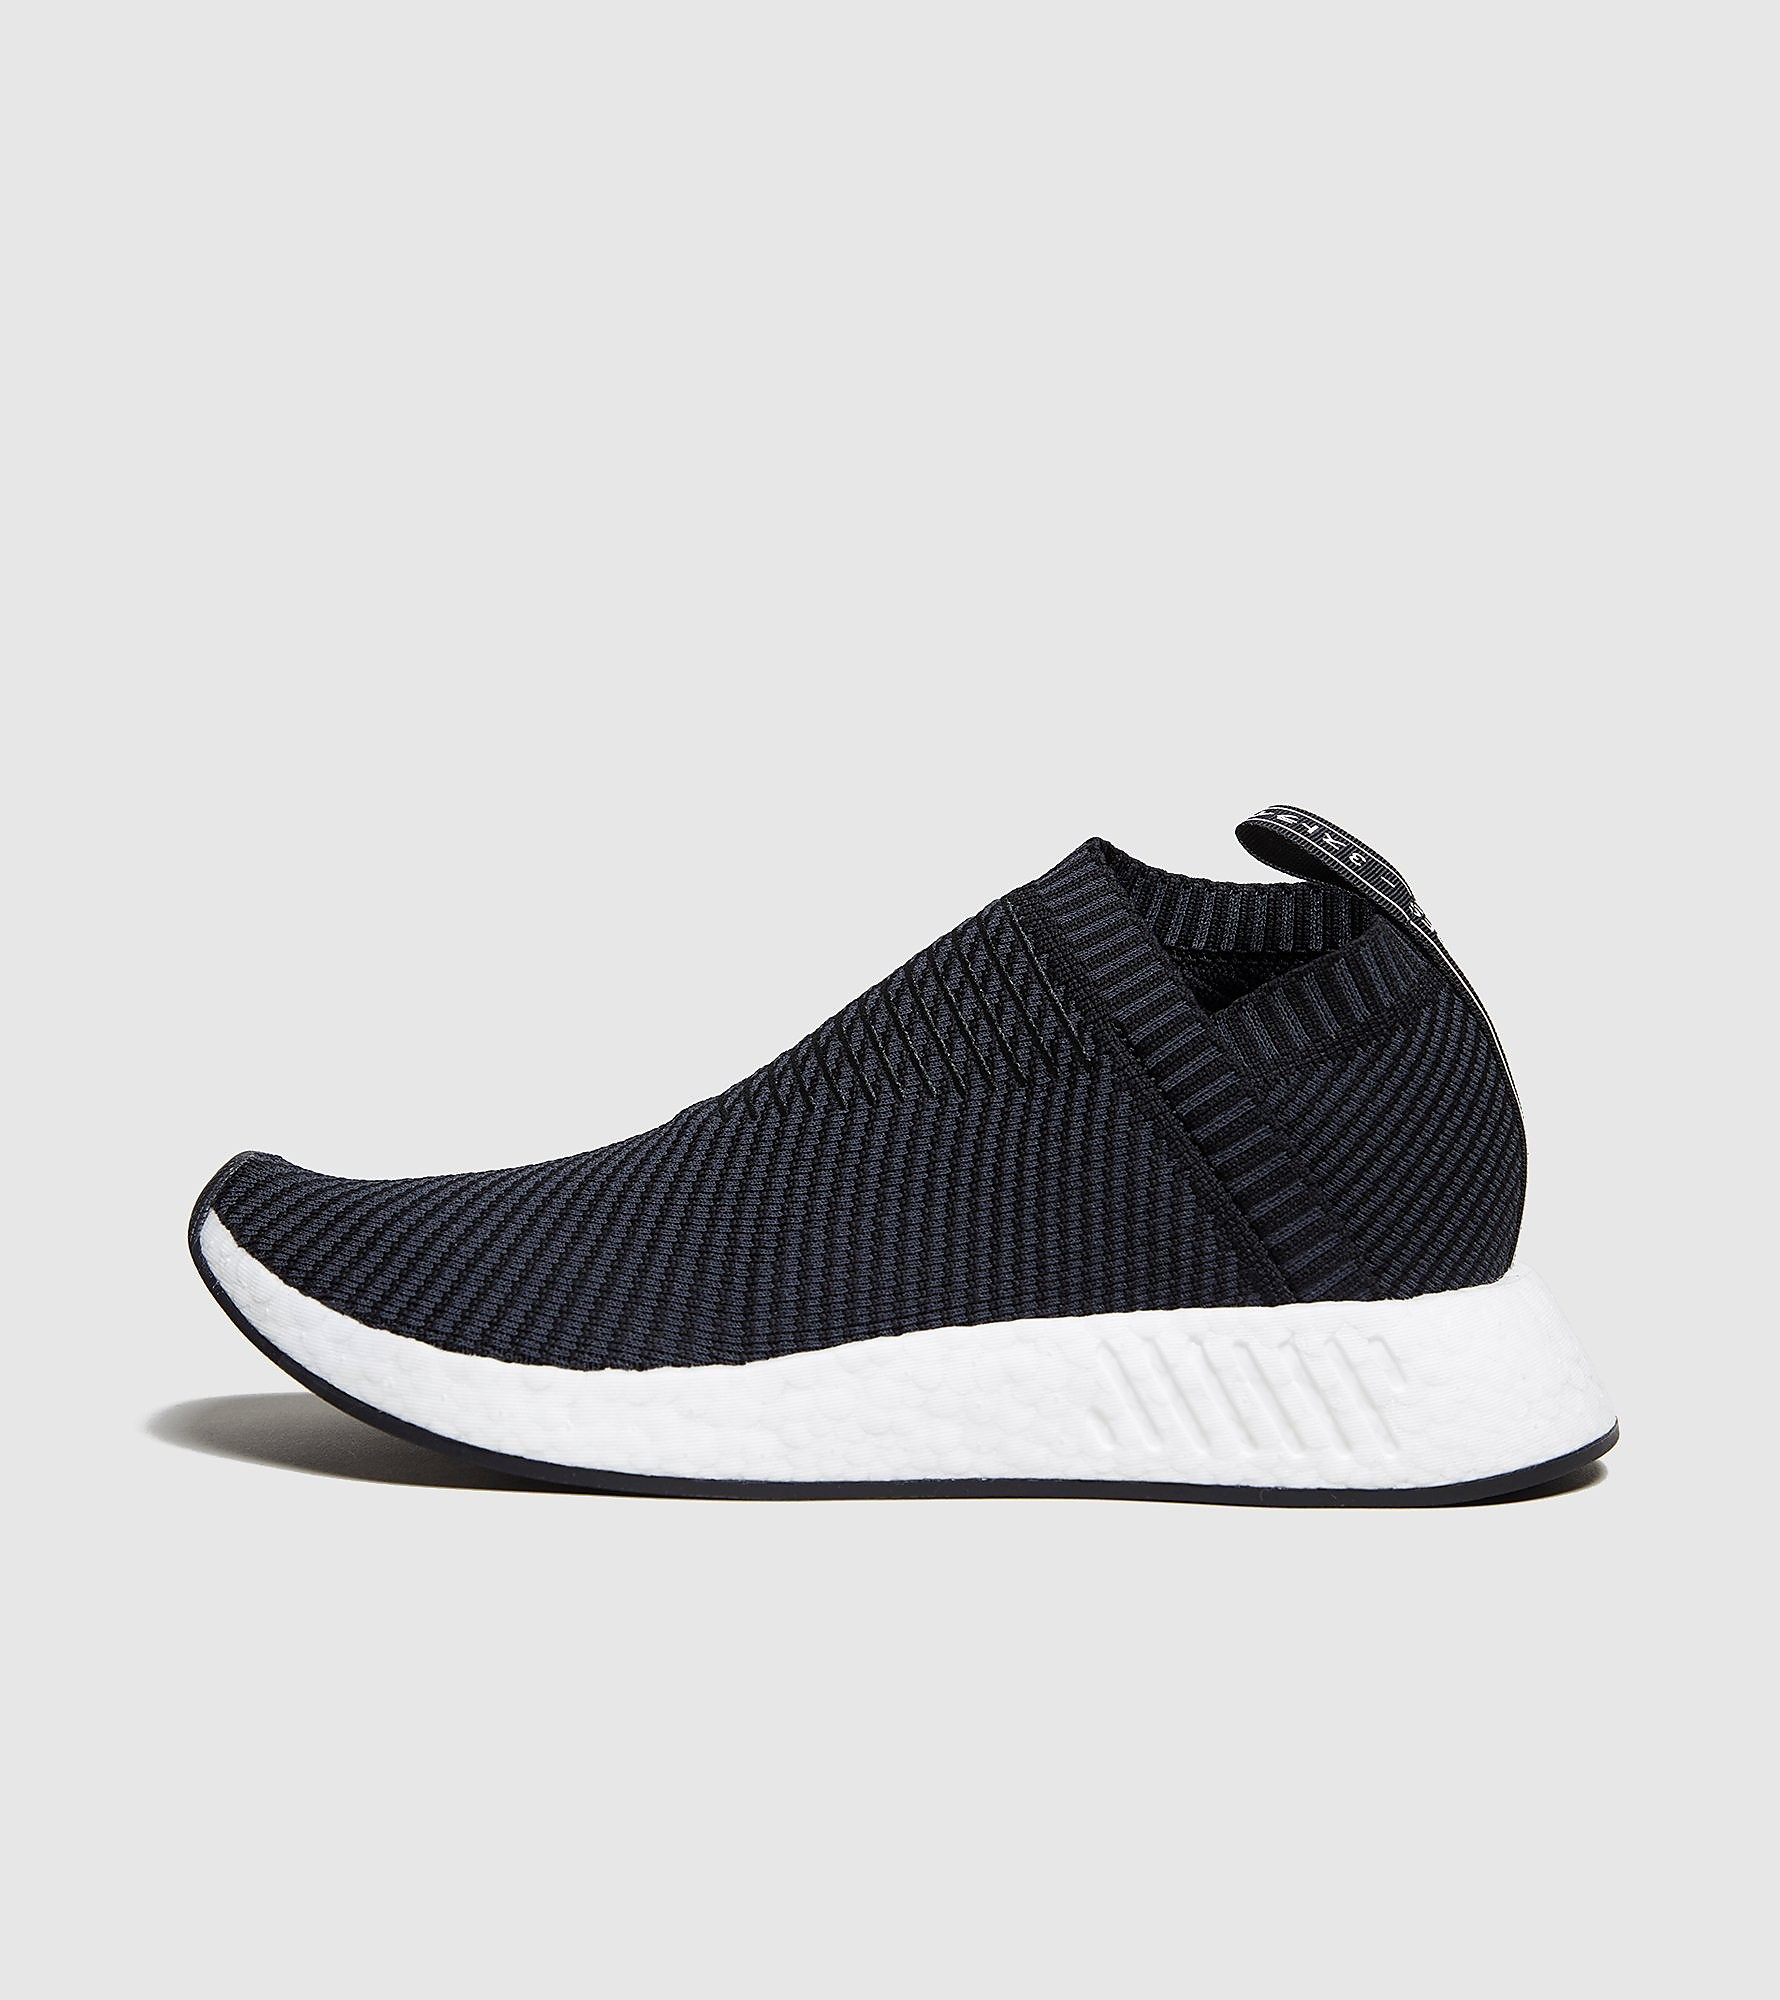 adidas Originals NMD CS2 Boost Primeknit